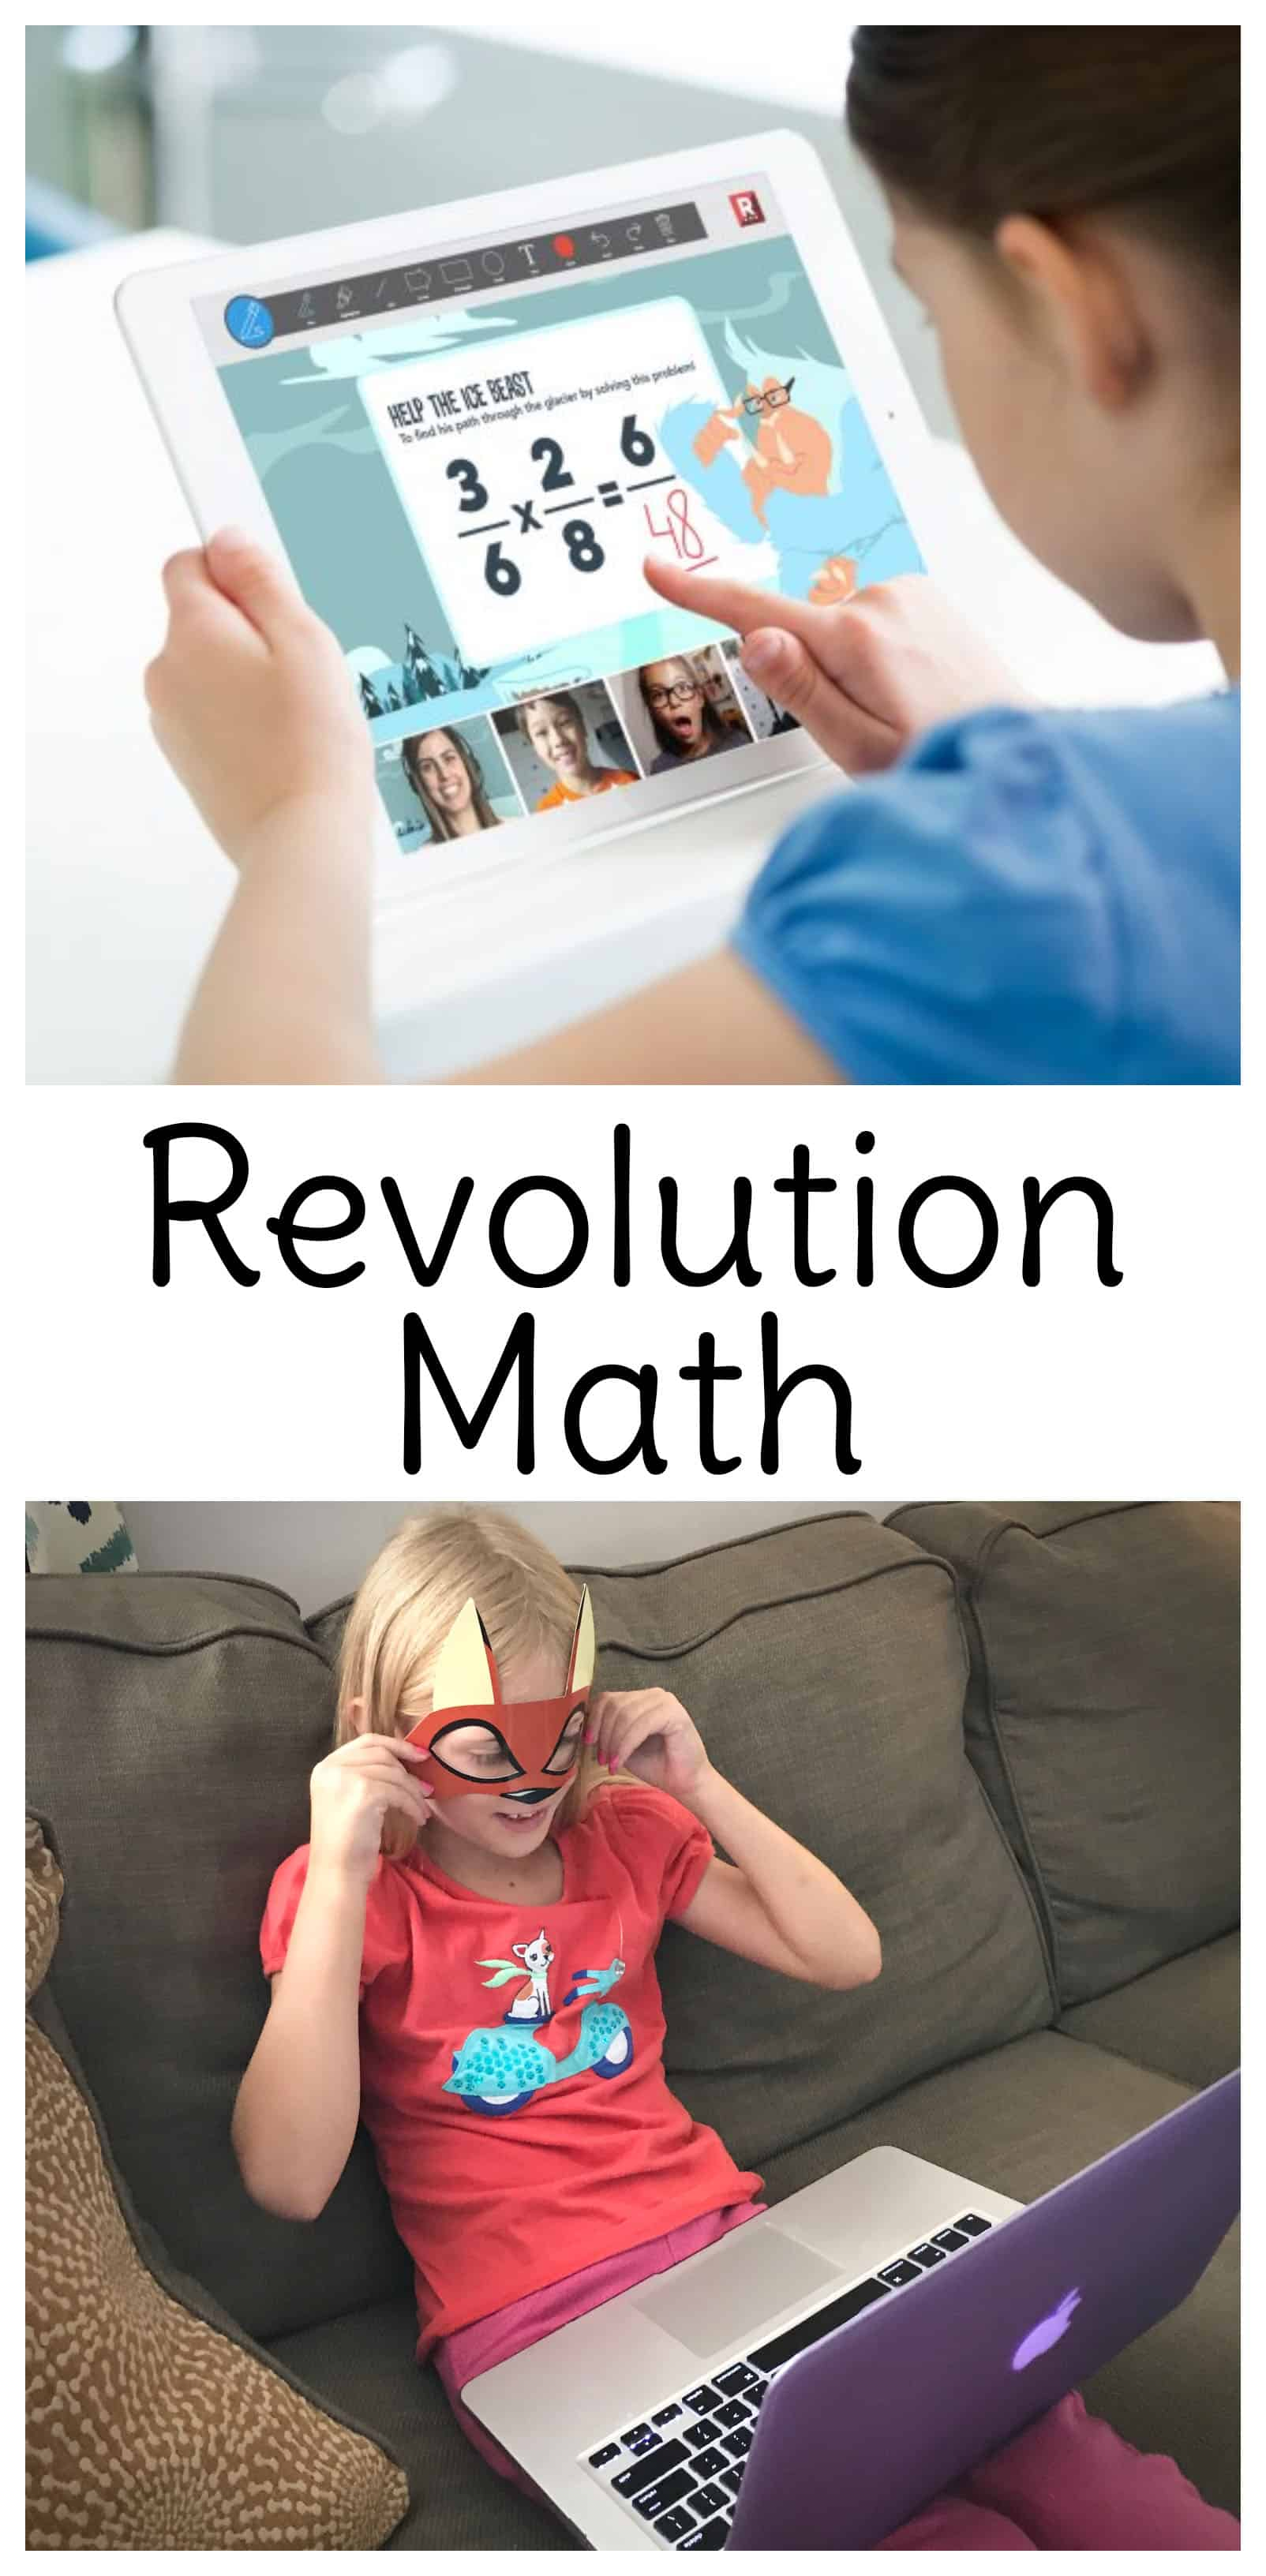 With math games for second grade through fifth grade, Revolution Math combines livetutoring and engagement with other students with an immersive, story-based curriculum. #math #mathgames